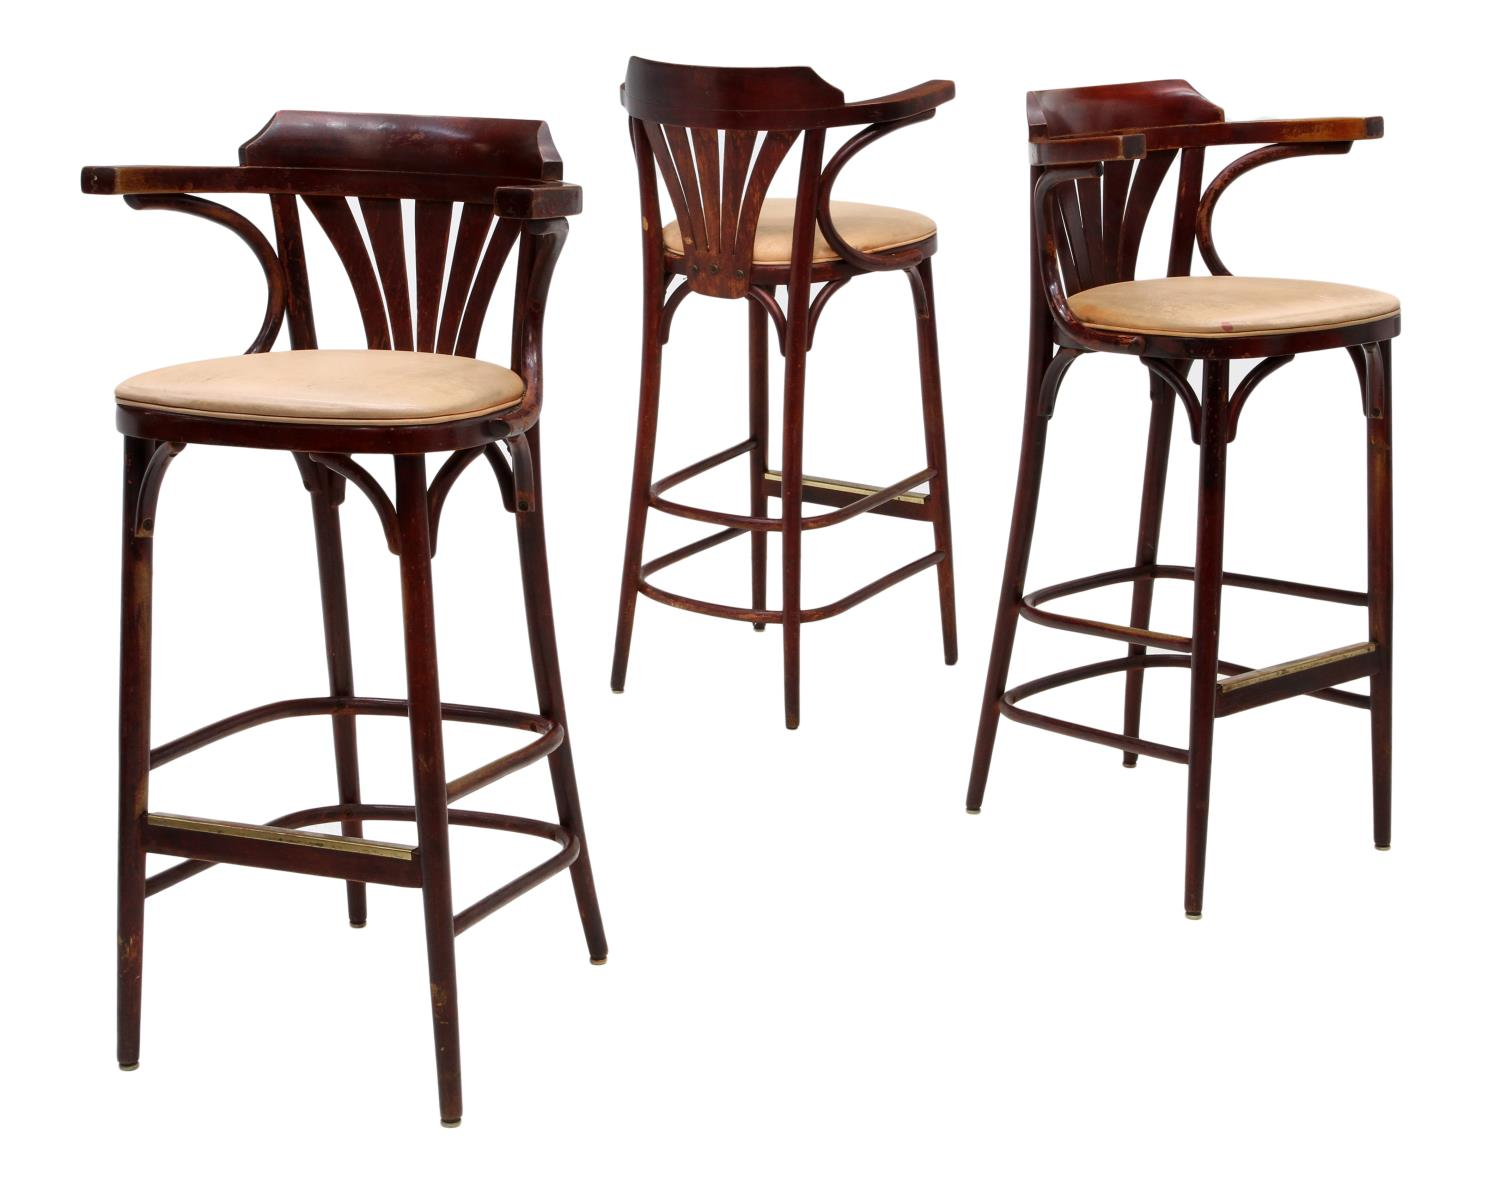 3 Vintage Shelby Williams Bar Stools Spectacular